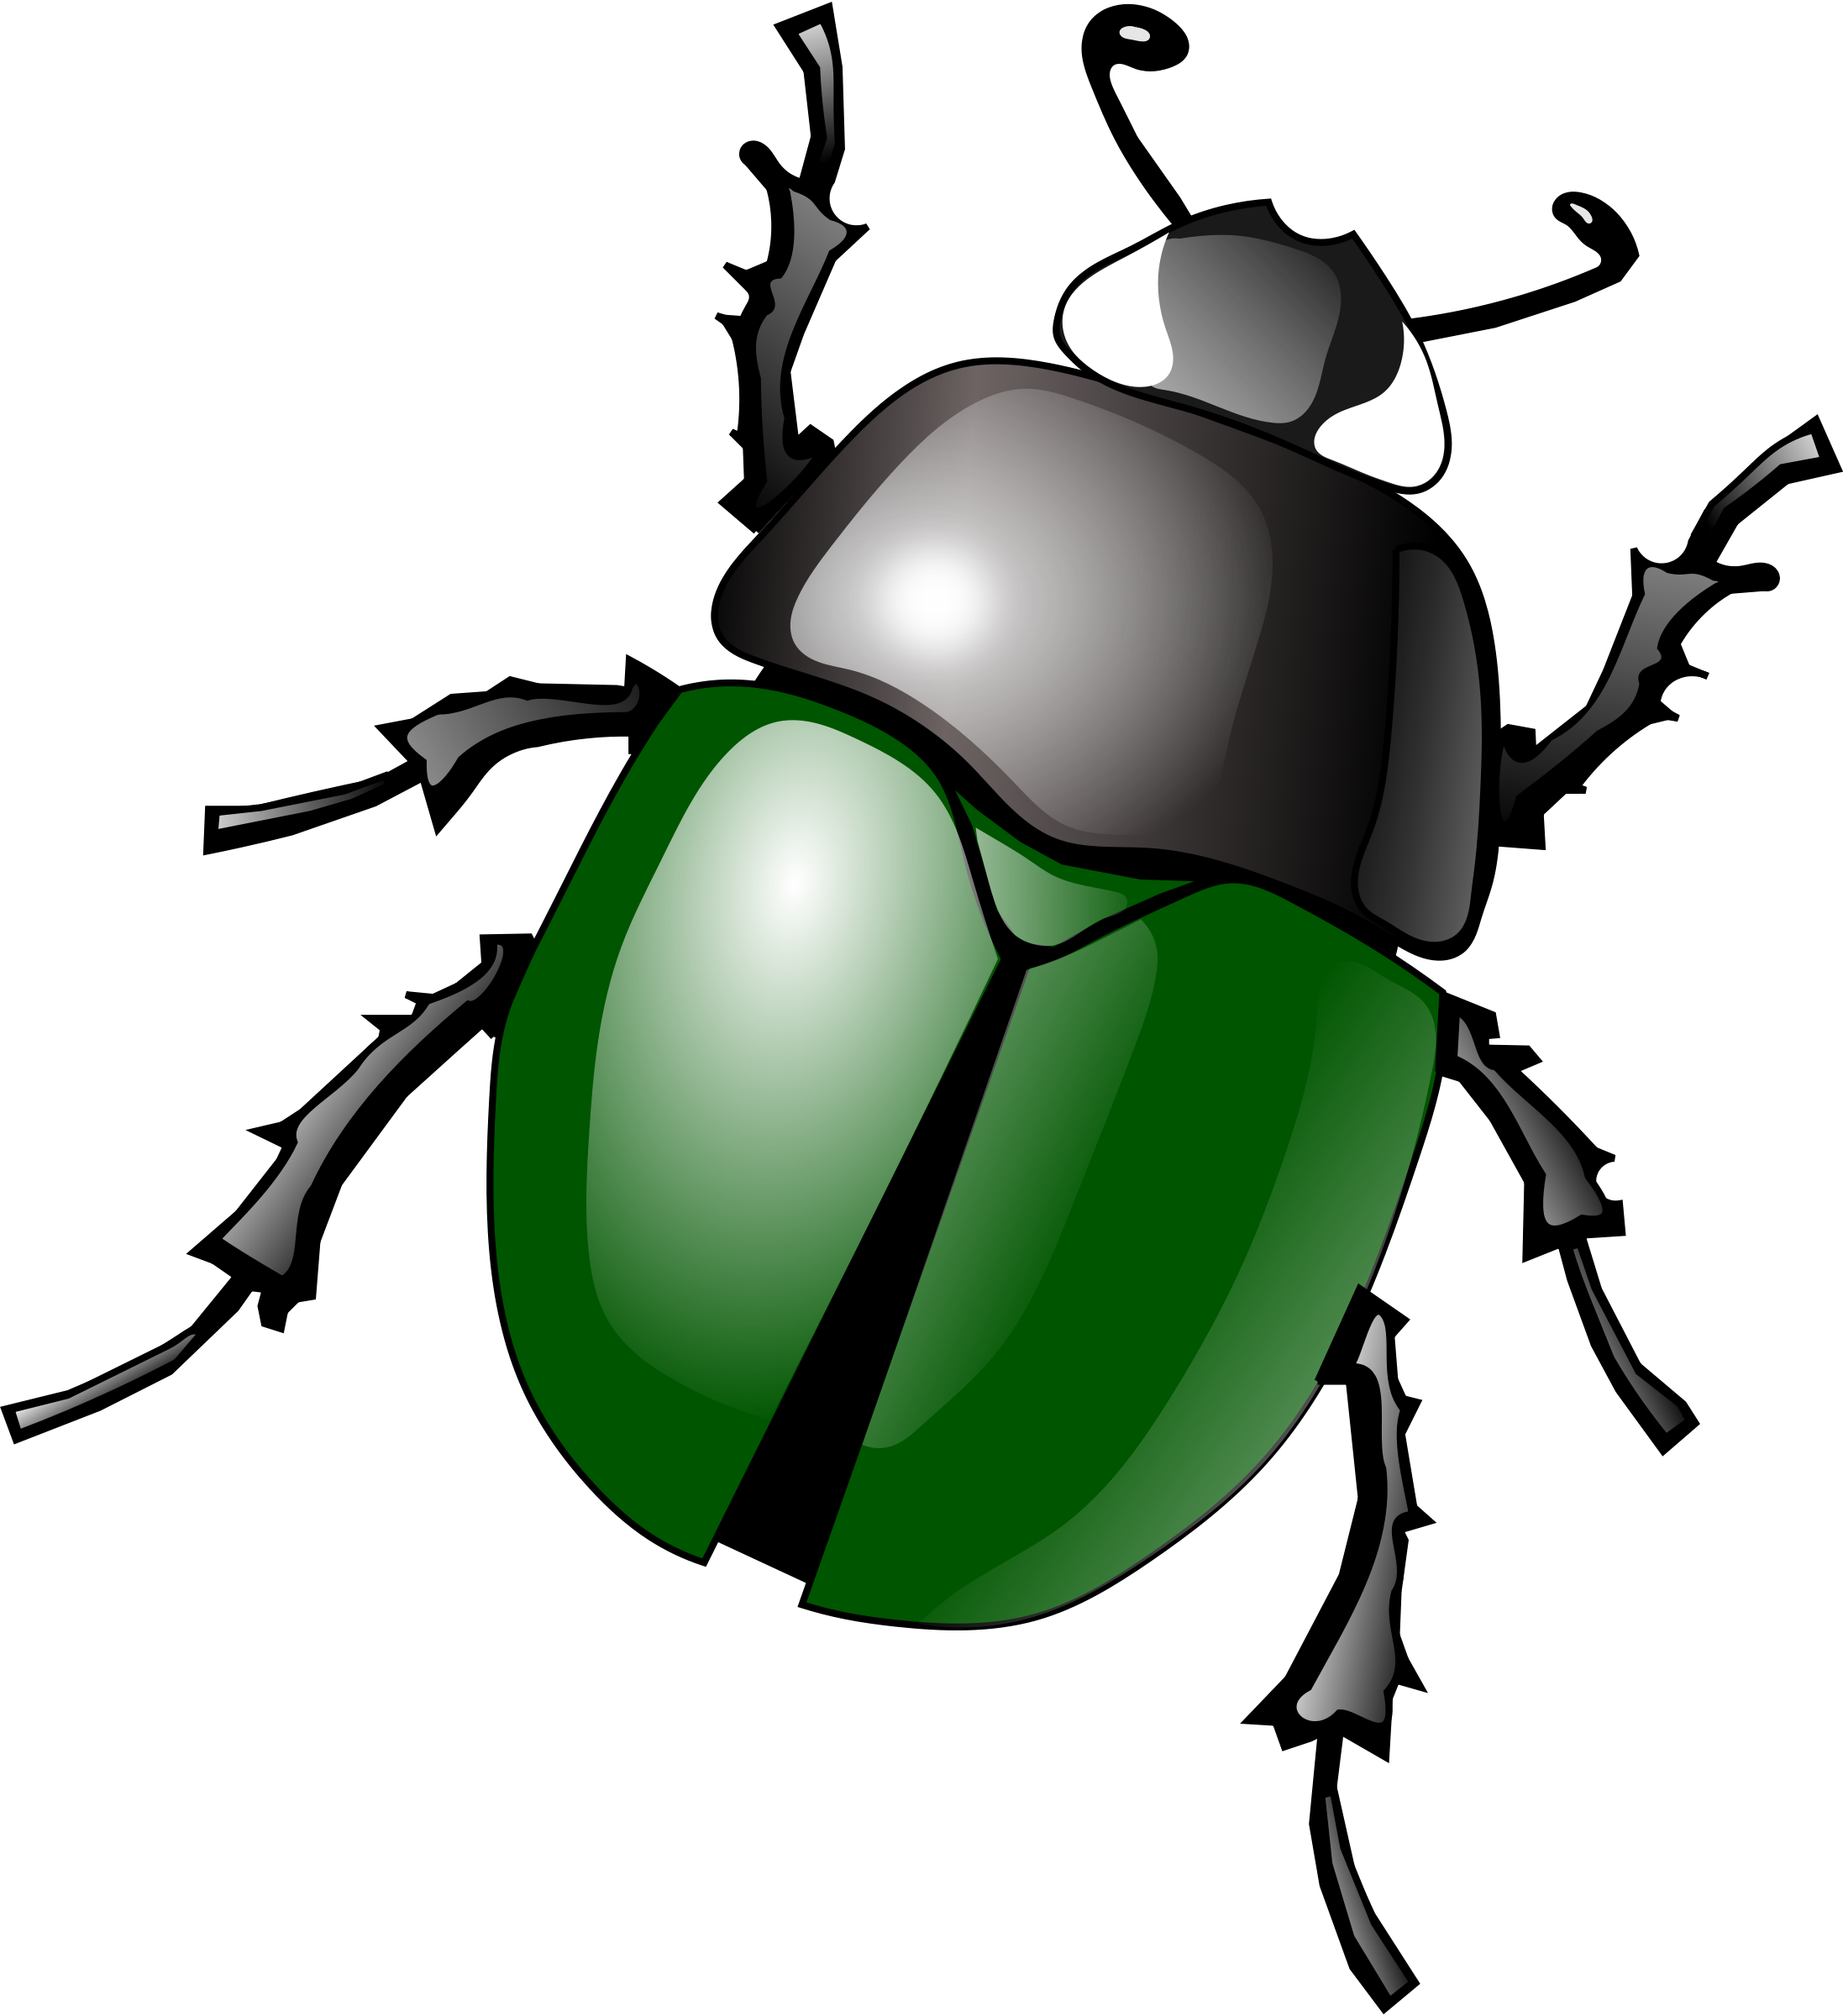 Png images free pictures. Bugs clipart transparent background